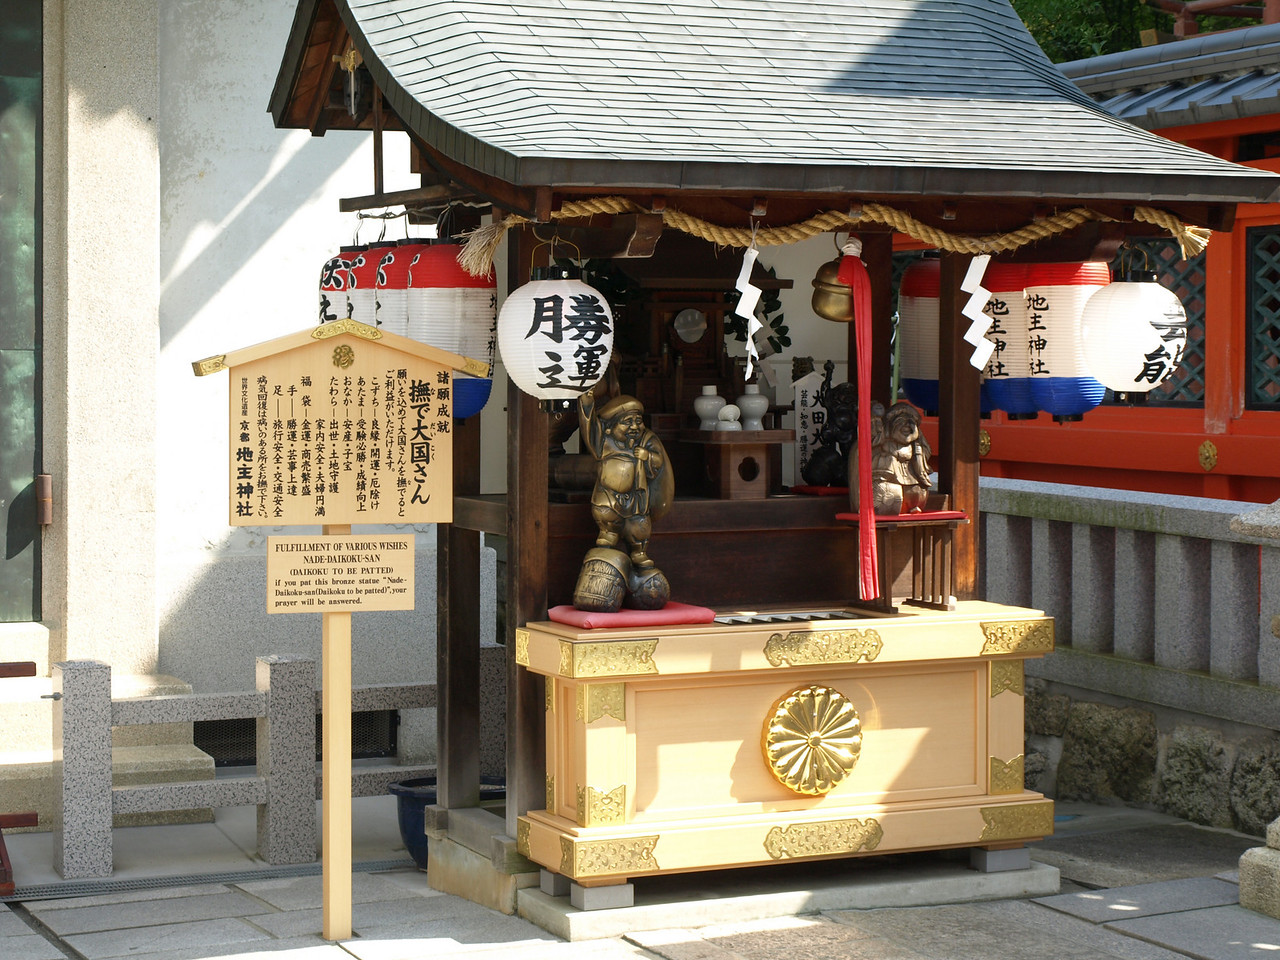 For fulfillment of various wishes. Pat the Nade-Daikoku-San figure to have your wish granted